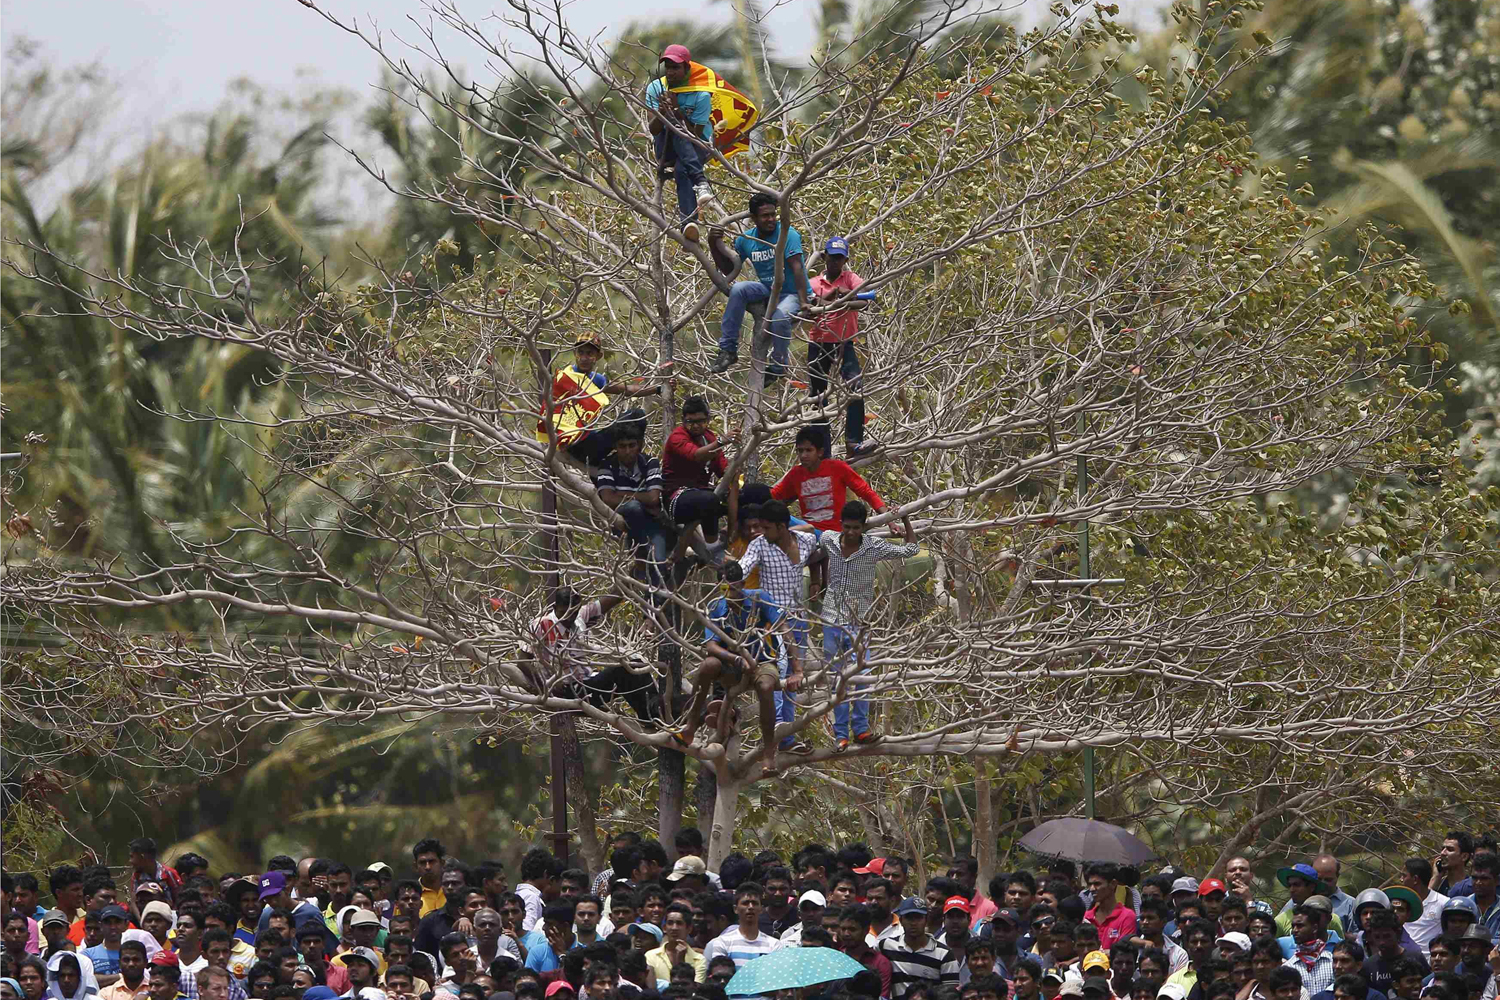 Aug. 30, 2014. Sri Lanka's cricket fans watch the match from a tree during the final ODI (One Day International) cricket match between Pakistan and Sri Lanka in Dambulla.